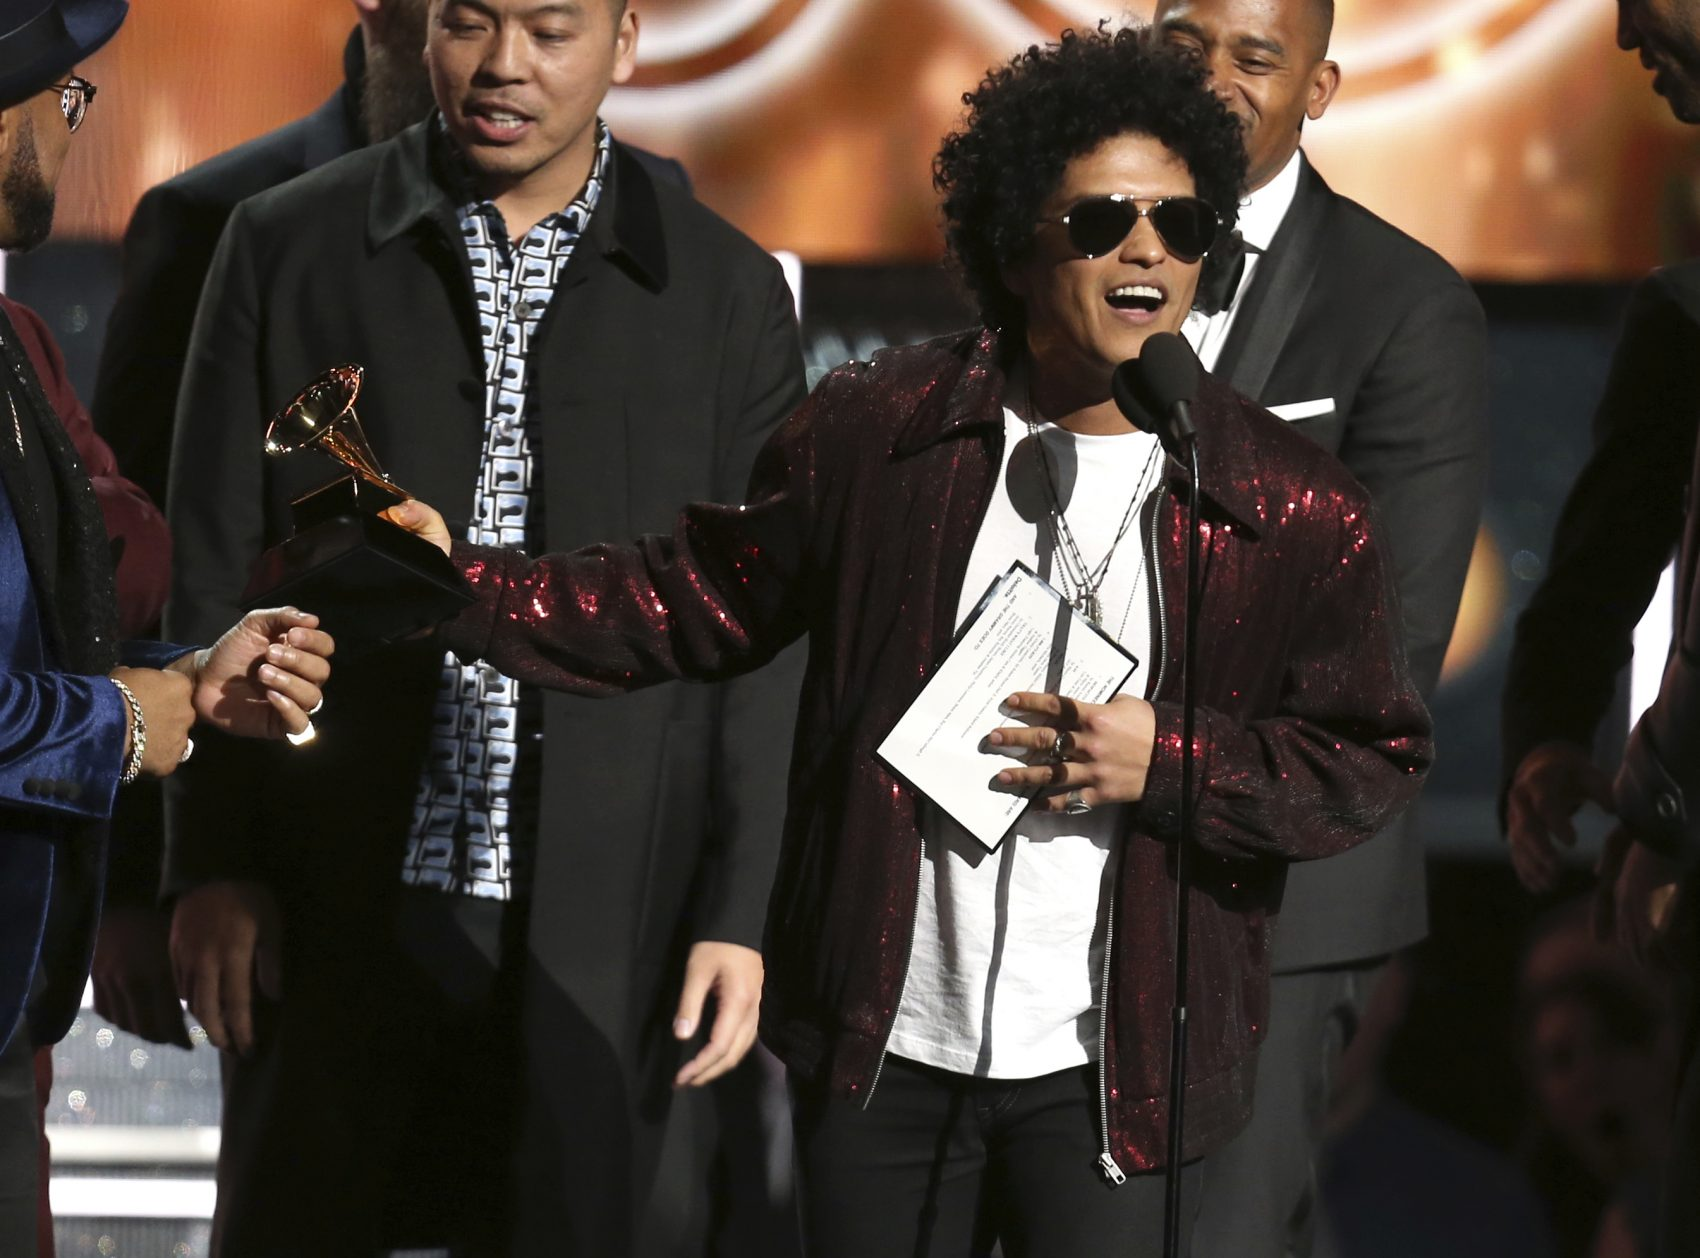 """Bruno Mars accepts the award for song of the year for """"That's What I Like"""" at the 60th annual Grammy Awards at Madison Square Garden on Sunday, Jan. 28, 2018, in New York. (Matt Sayles/Invision/AP)"""